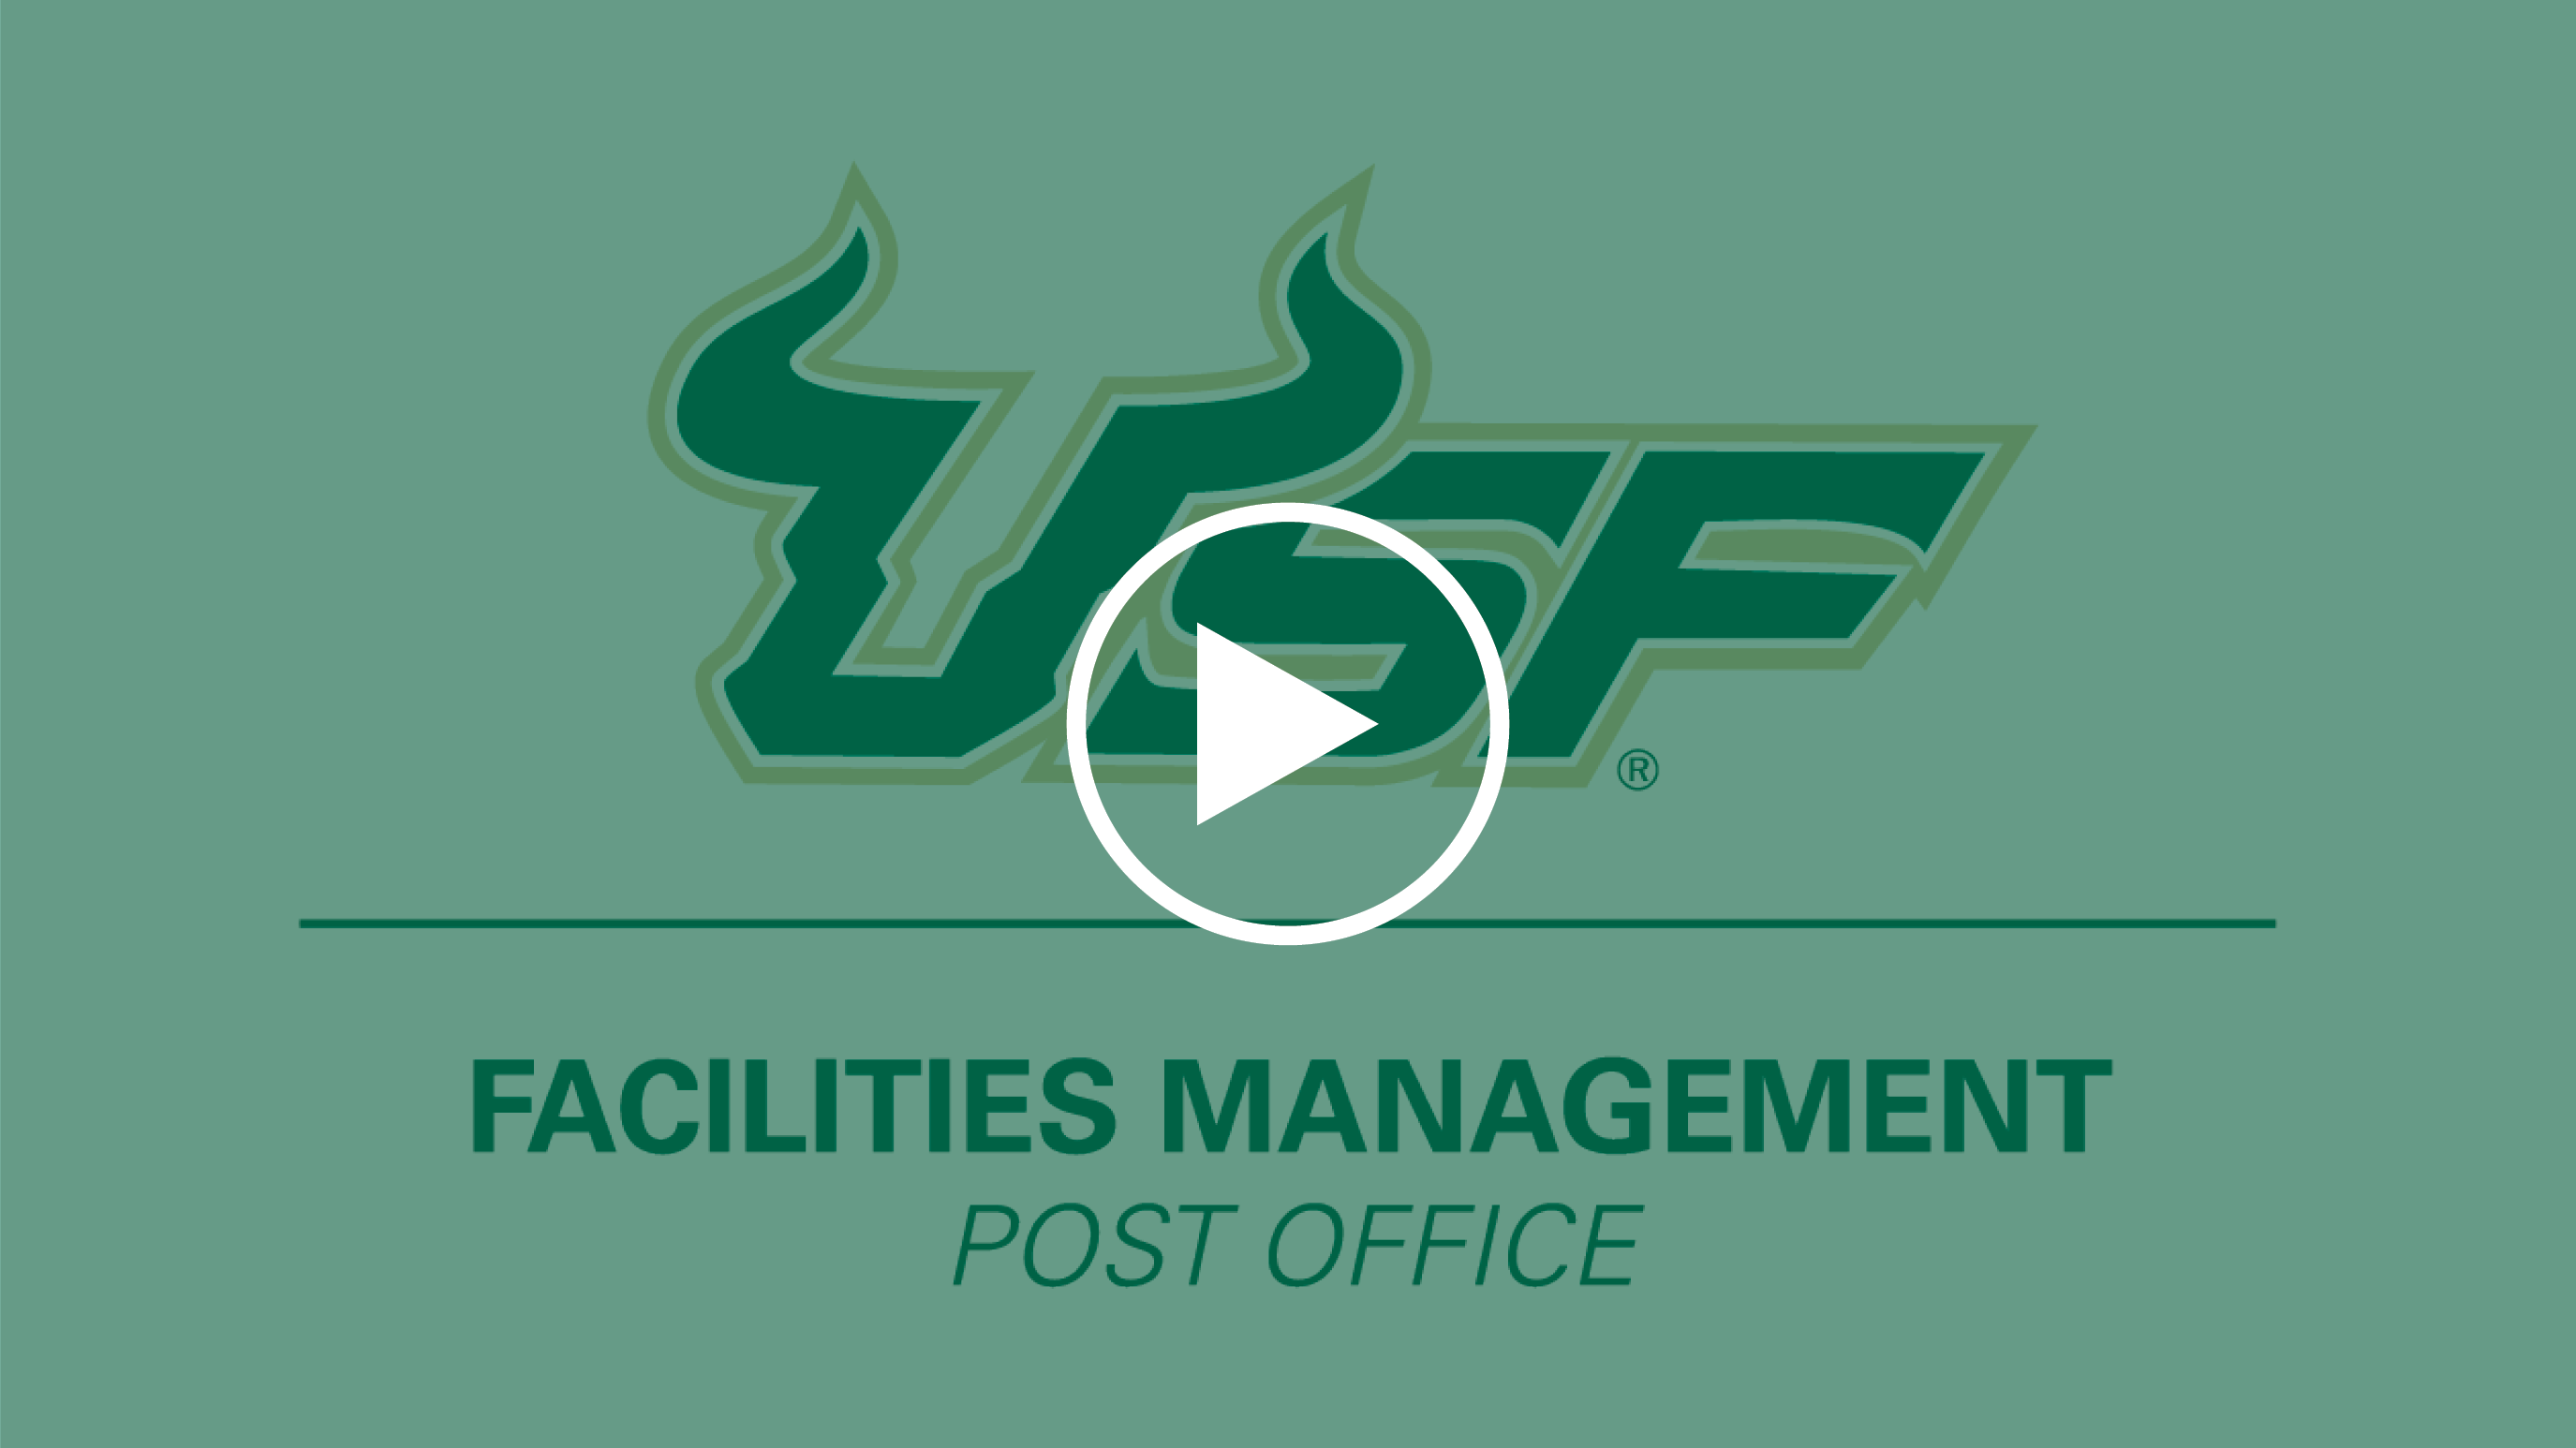 USF Facilities Management Post Office logo with a green overlay and a play icon on top of it.